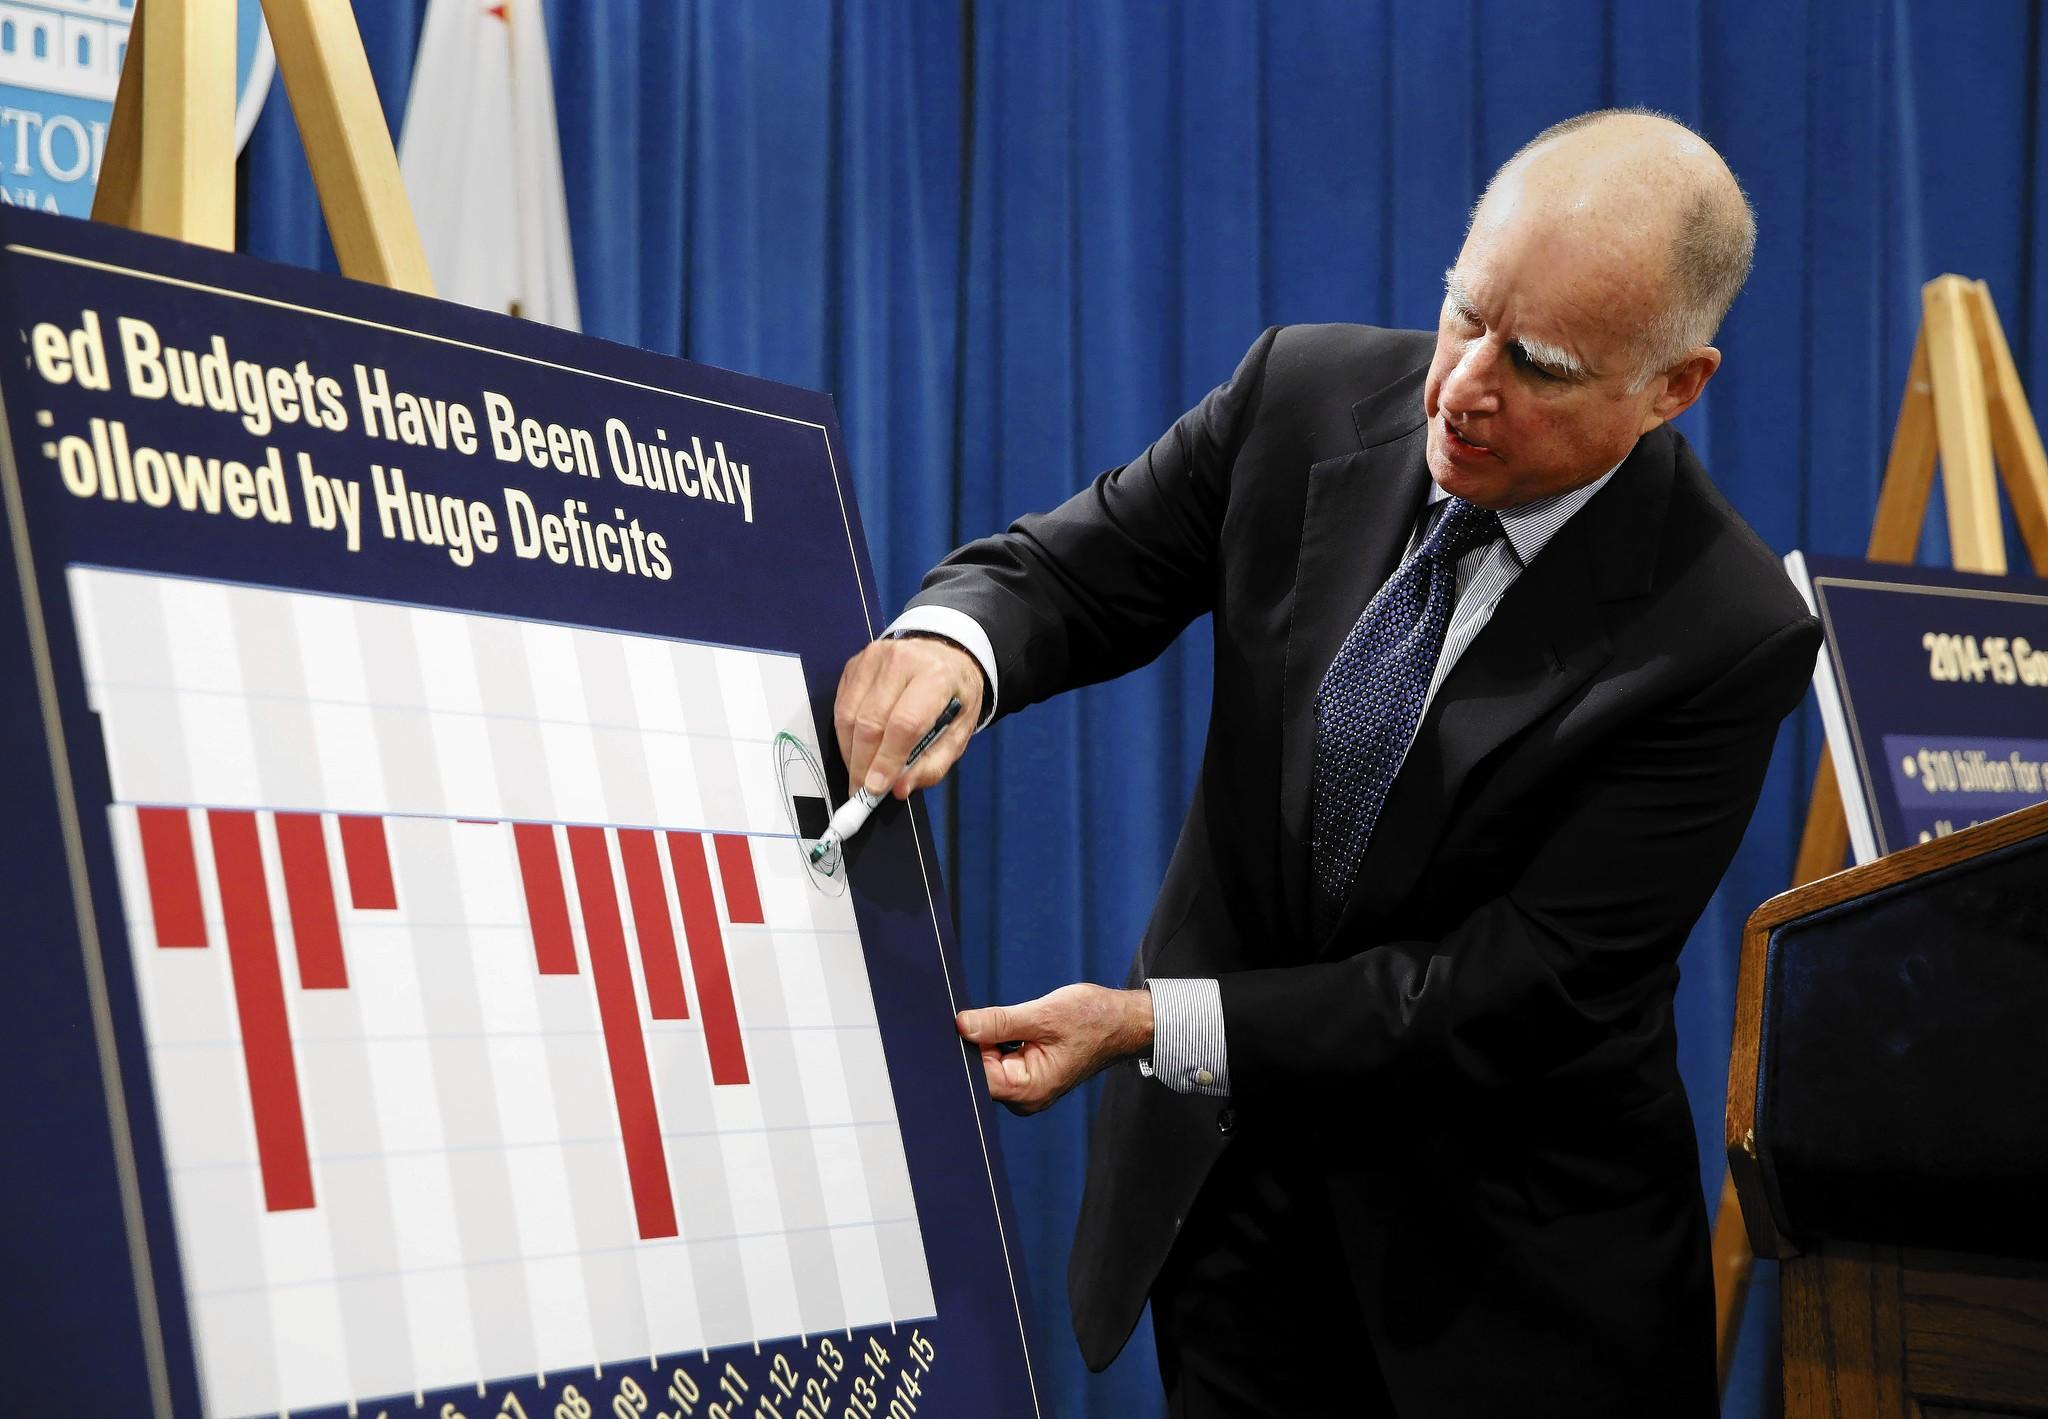 During a Sacramento news conference at which he unveiled his proposed 2014-15 state budget, Gov. Jerry Brown circles the black bar showing a surplus projected for the coming year, after years of deficits, represented in red.